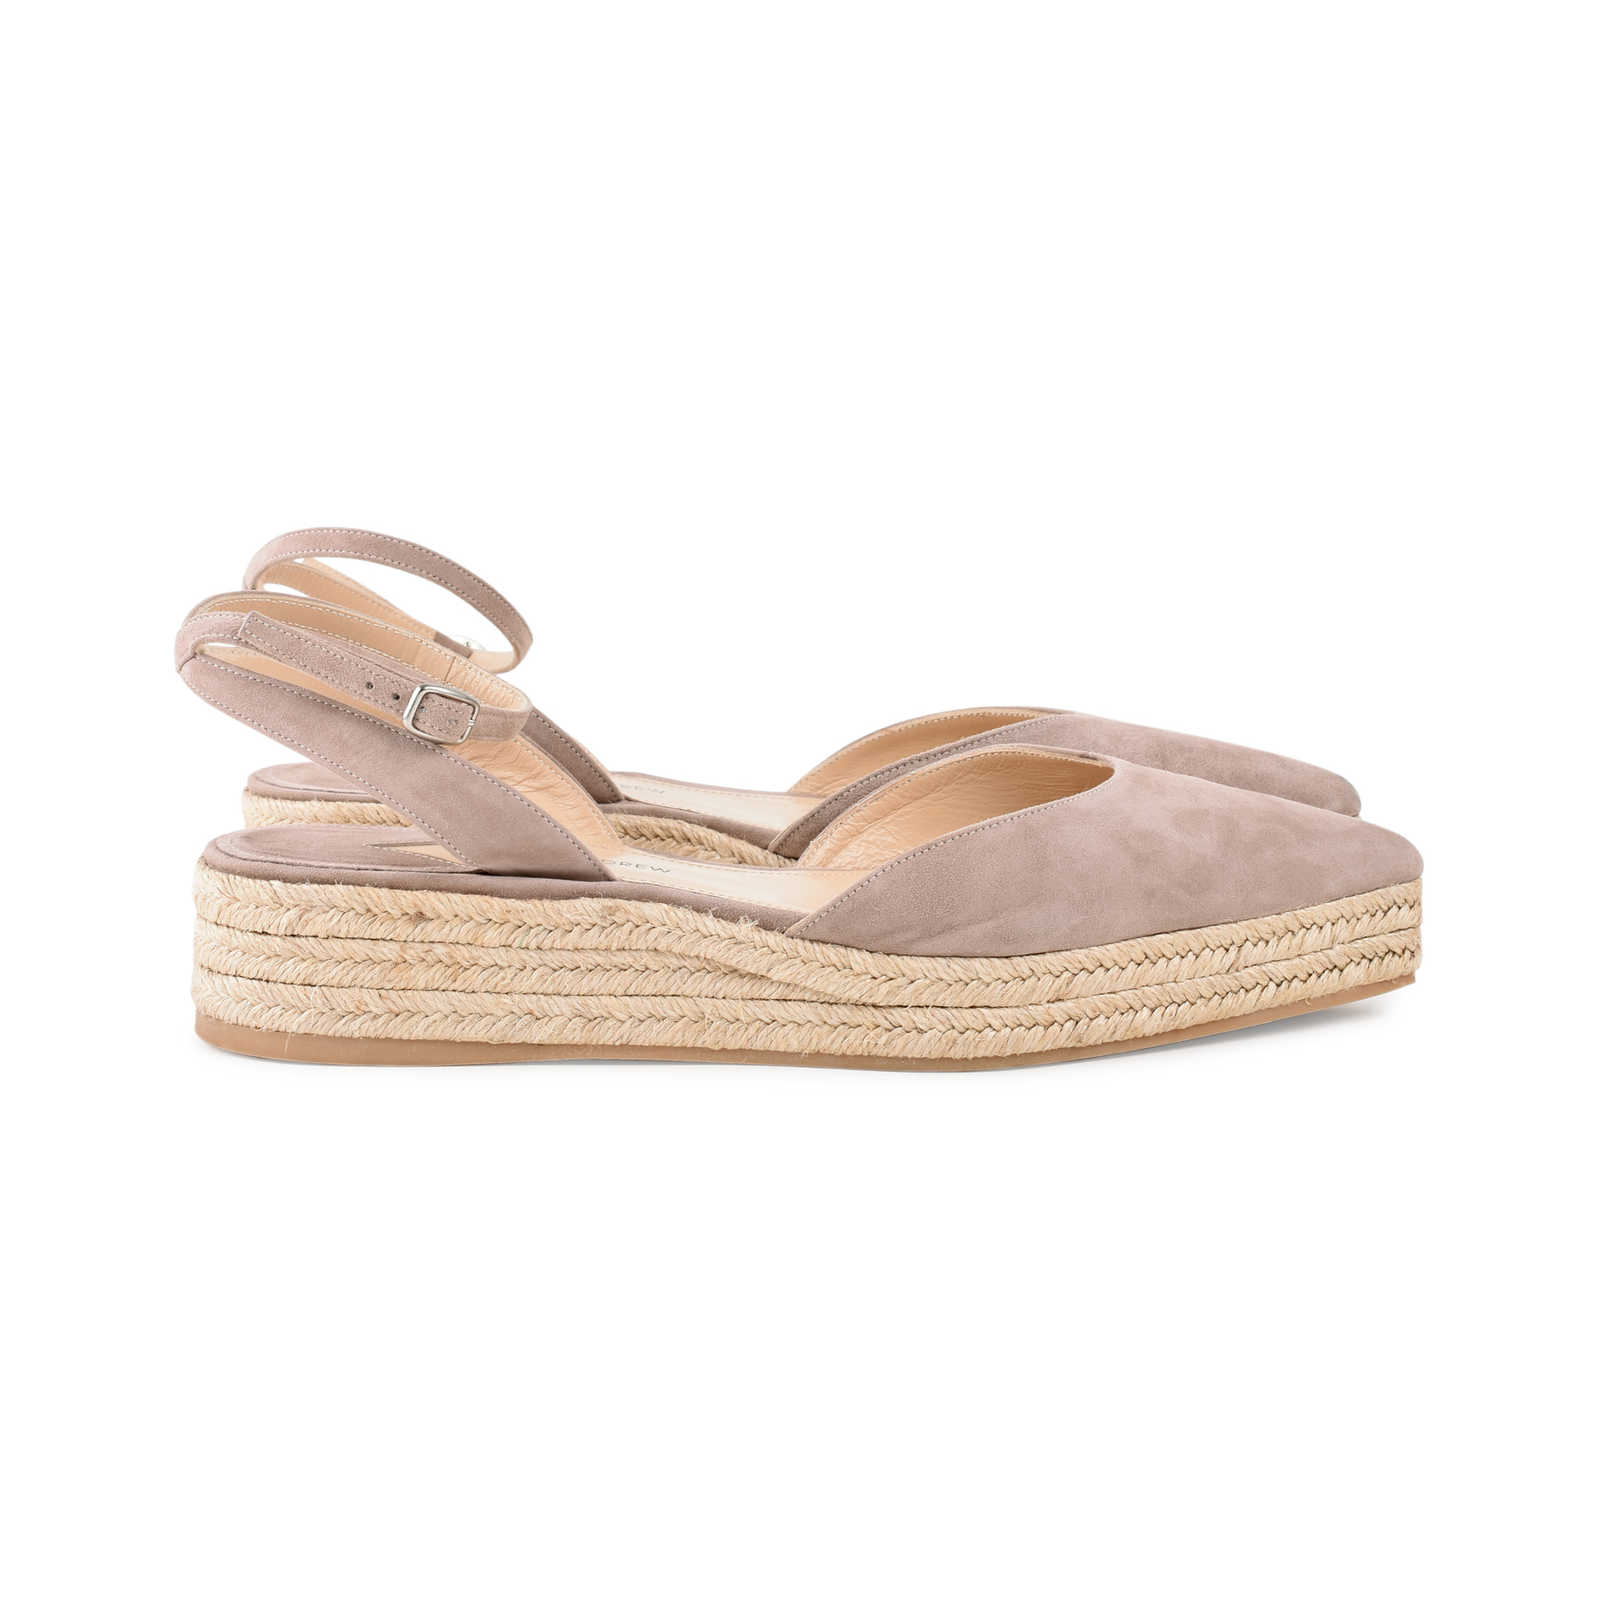 Paul Andrew Rhea Suede Espadrilles w/ Tags Clearance Clearance Store Good Selling Cheap Online New Styles Cheap Sale Amazon Manchester Great Sale Sale Online jZZjt3